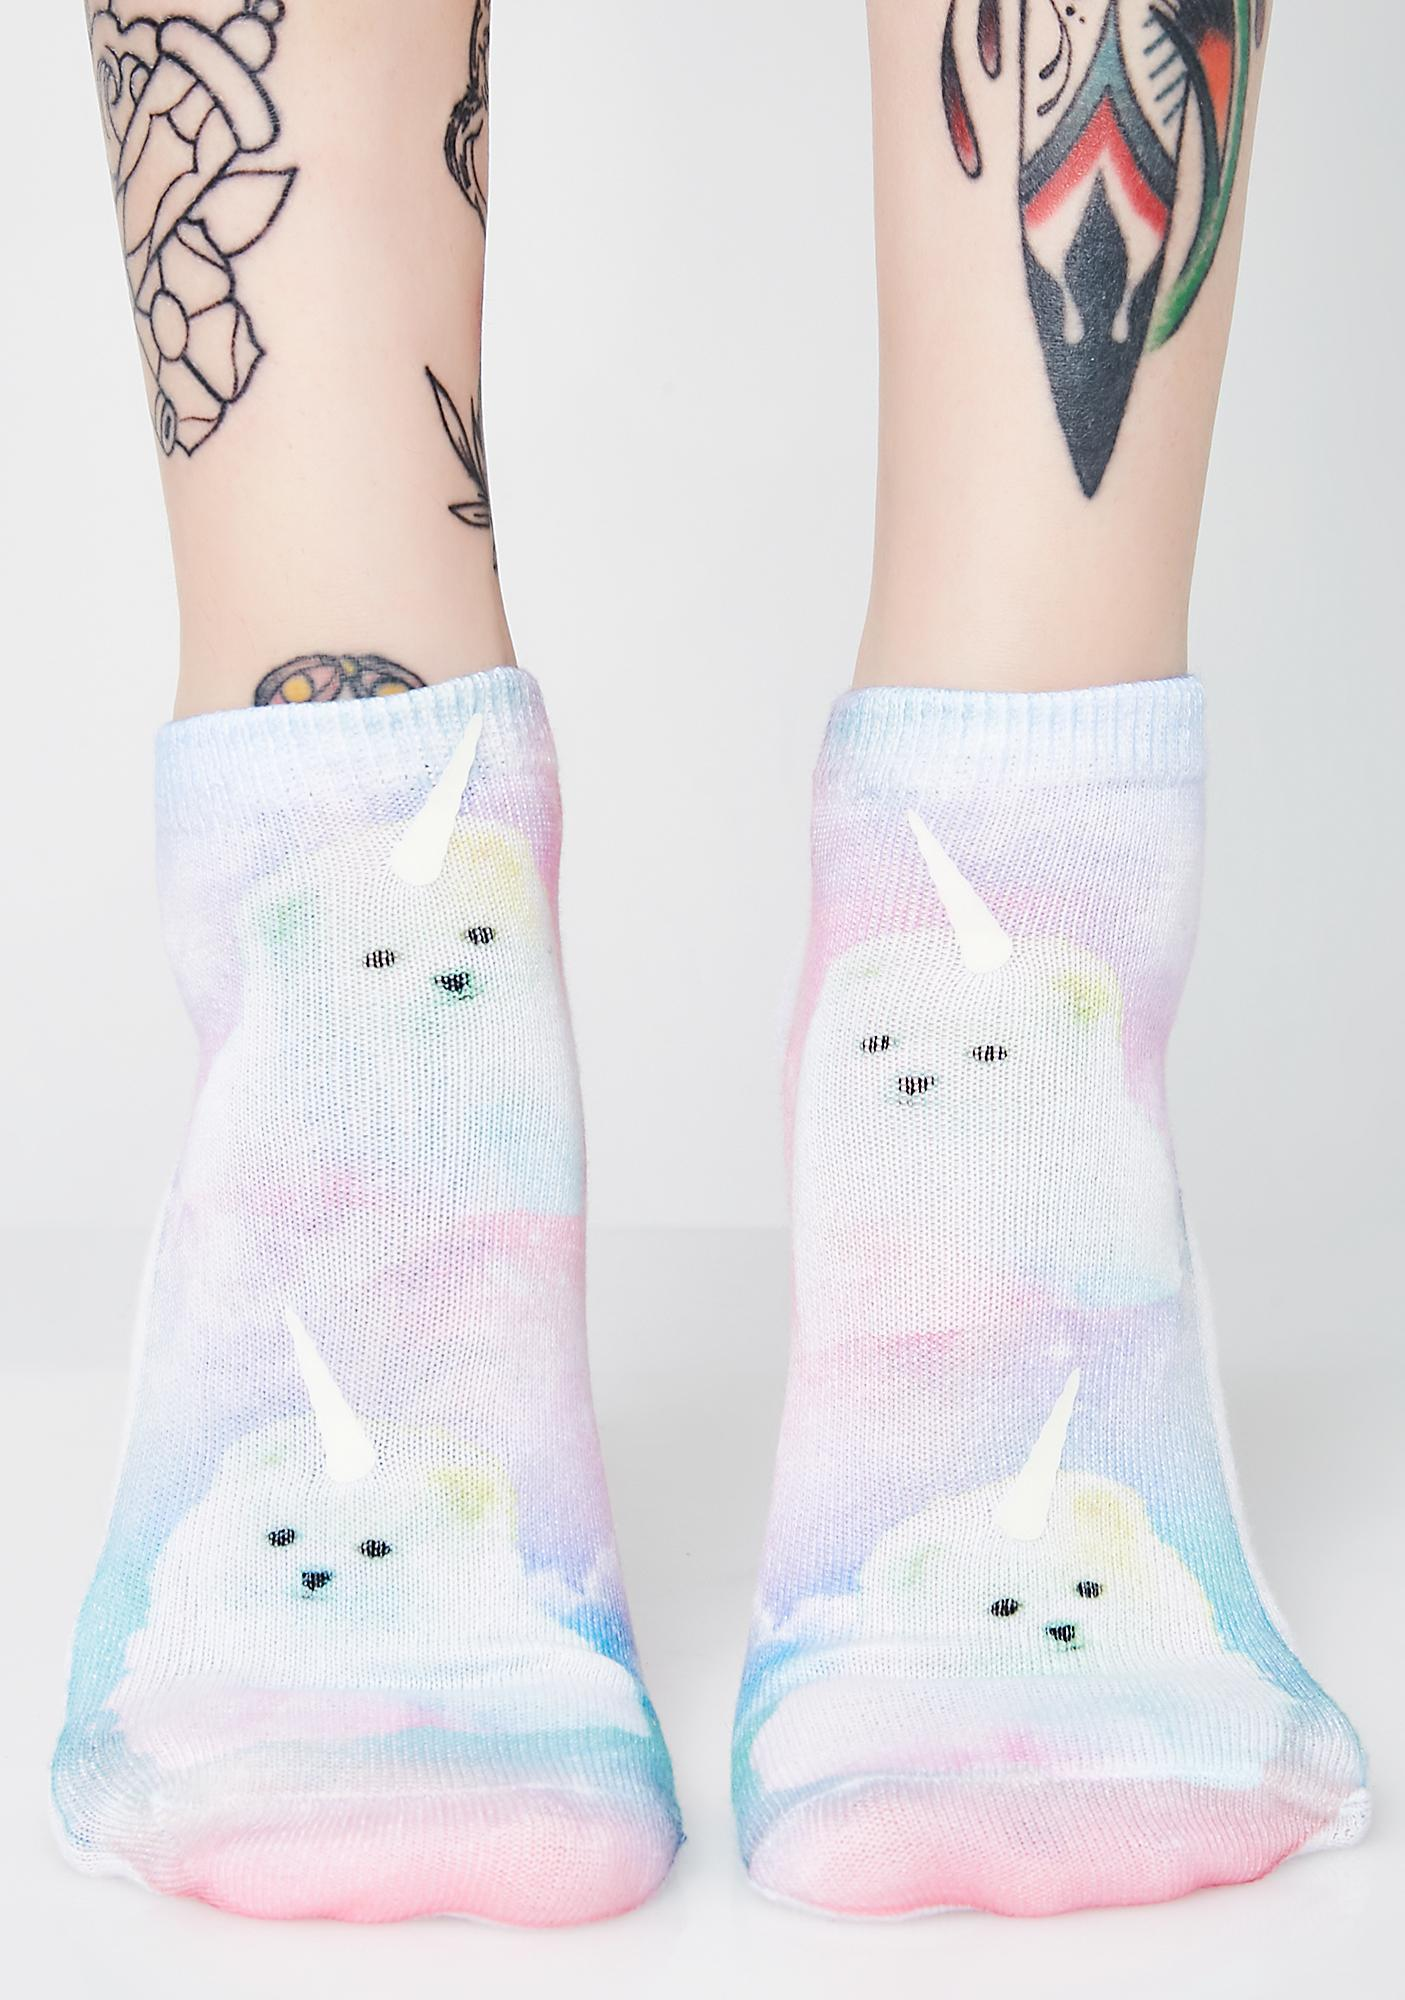 Mythical Pup Glow Ankle Socks